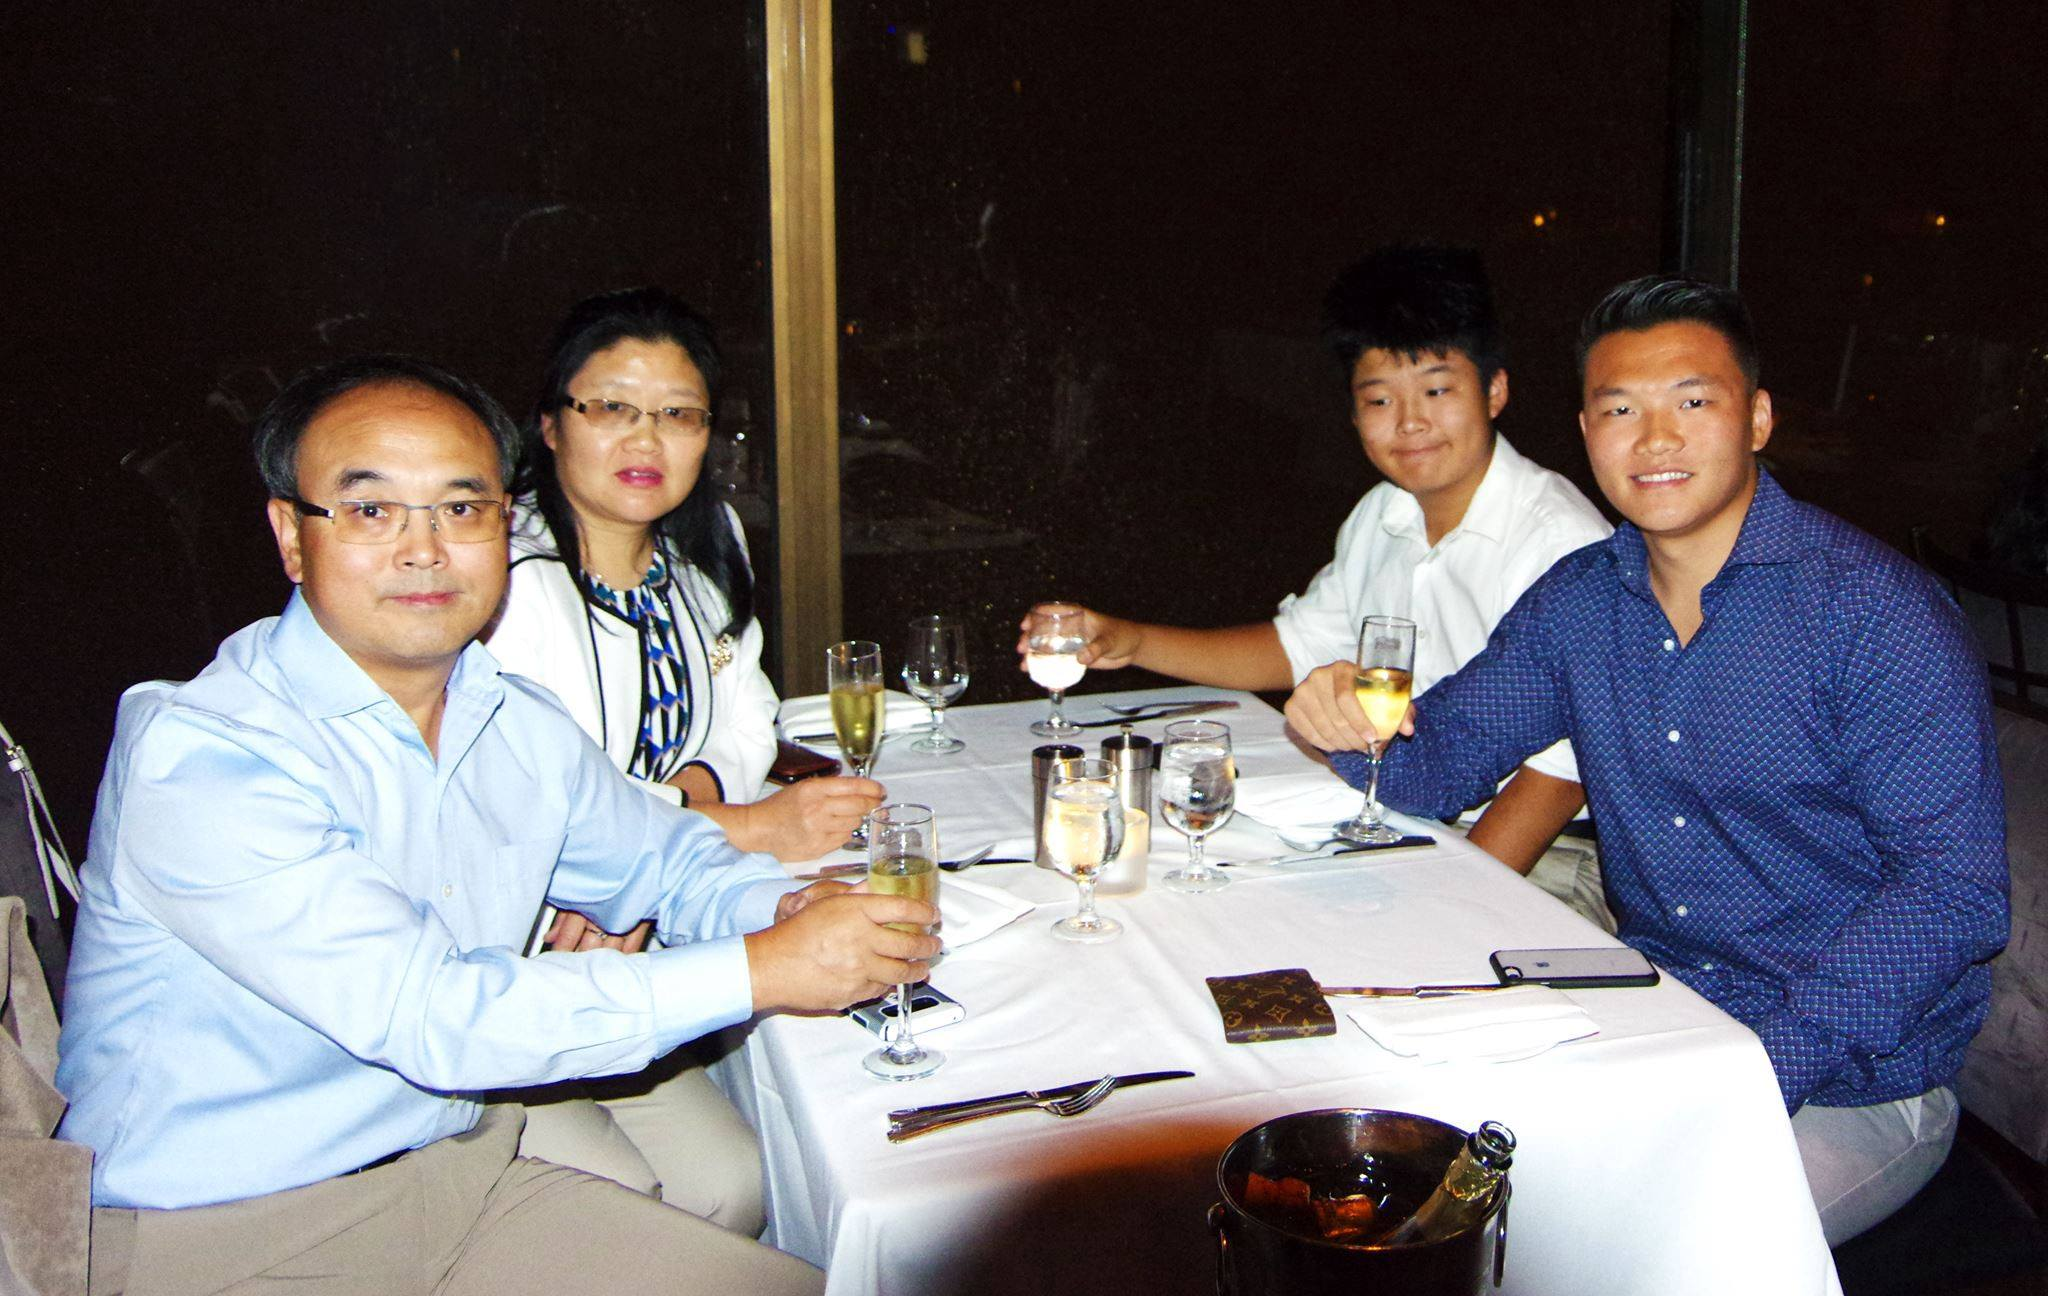 Kevin Zhang with family at dinner